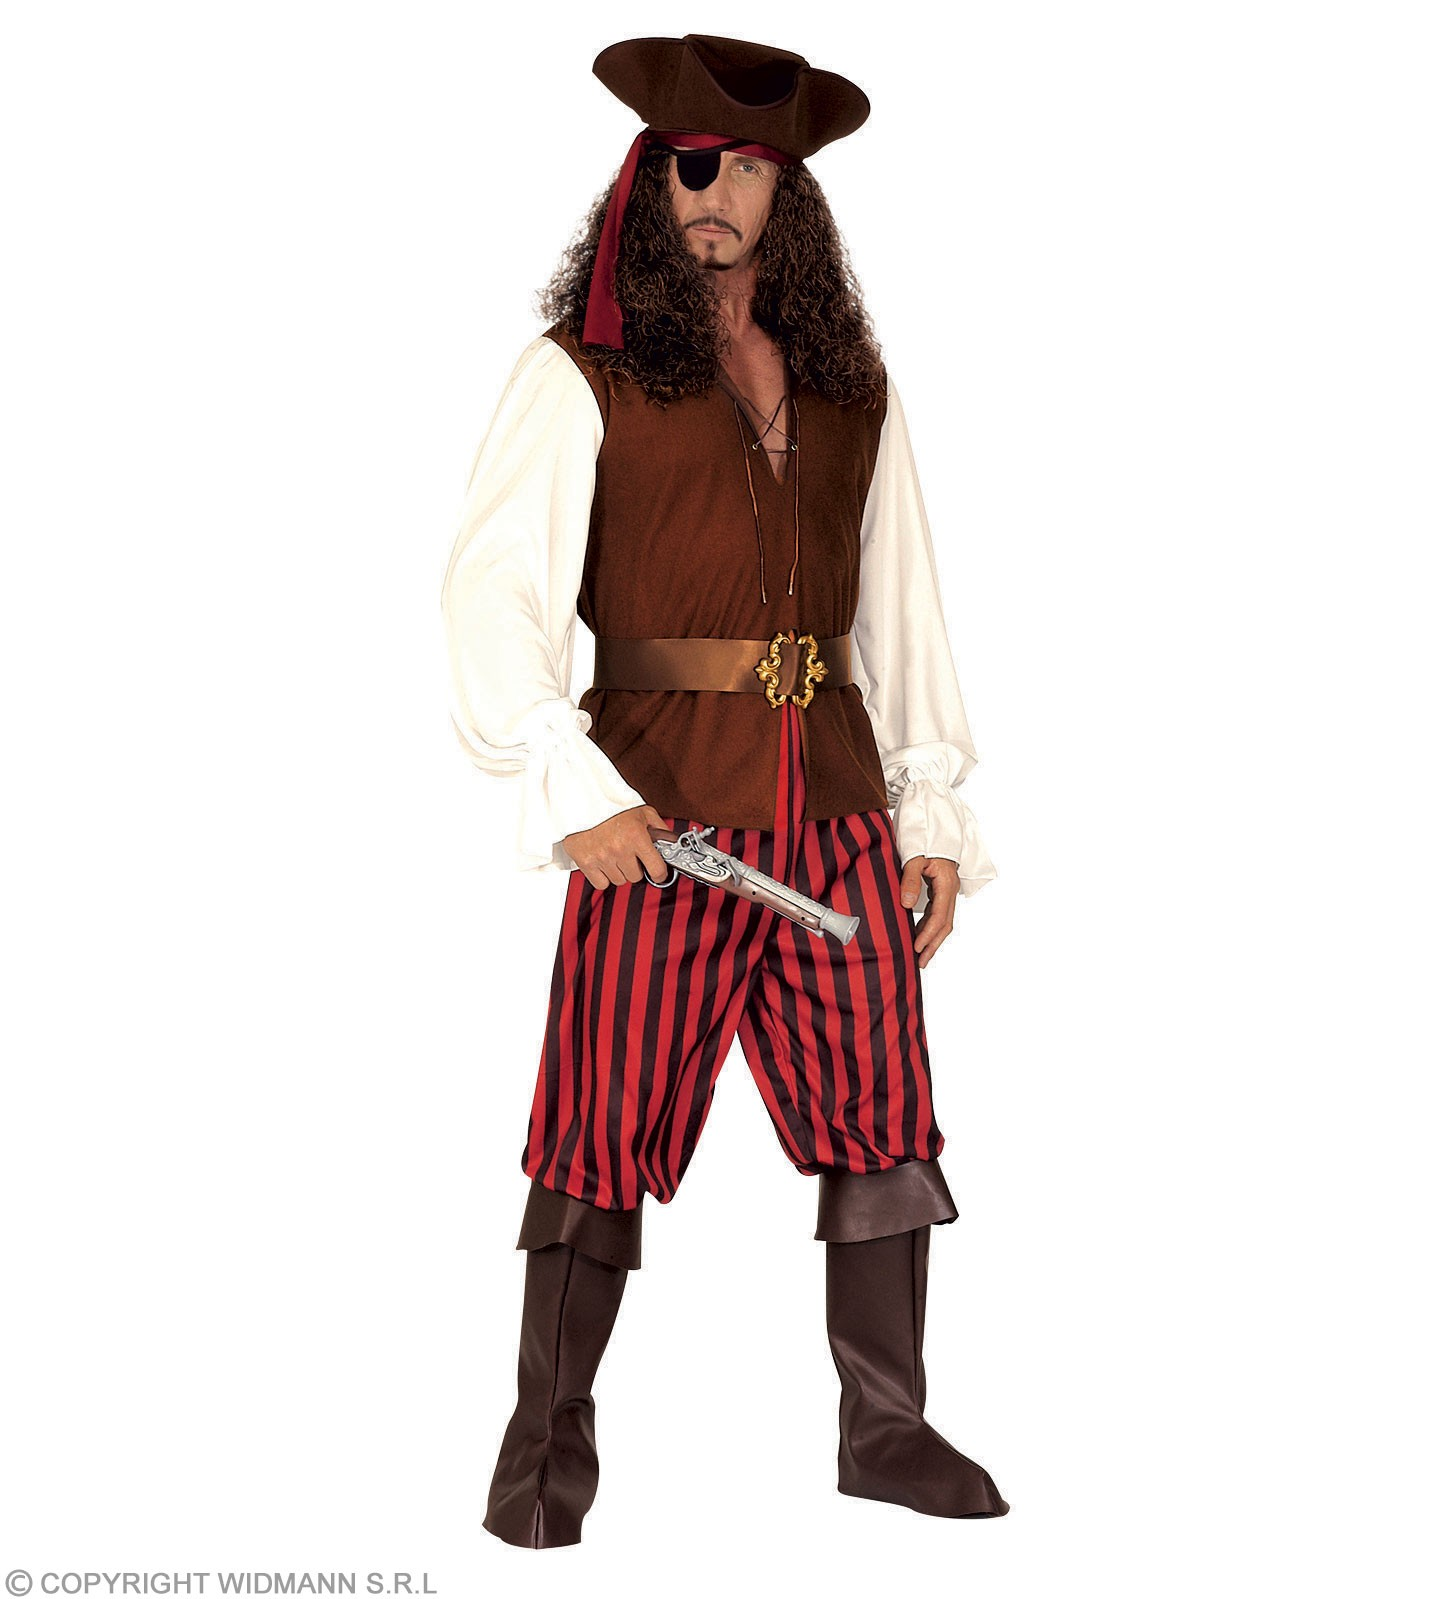 Xxl High Sea Pirate Shirt & Vest, Pants Mens 48-50 Xxl (Pirates)